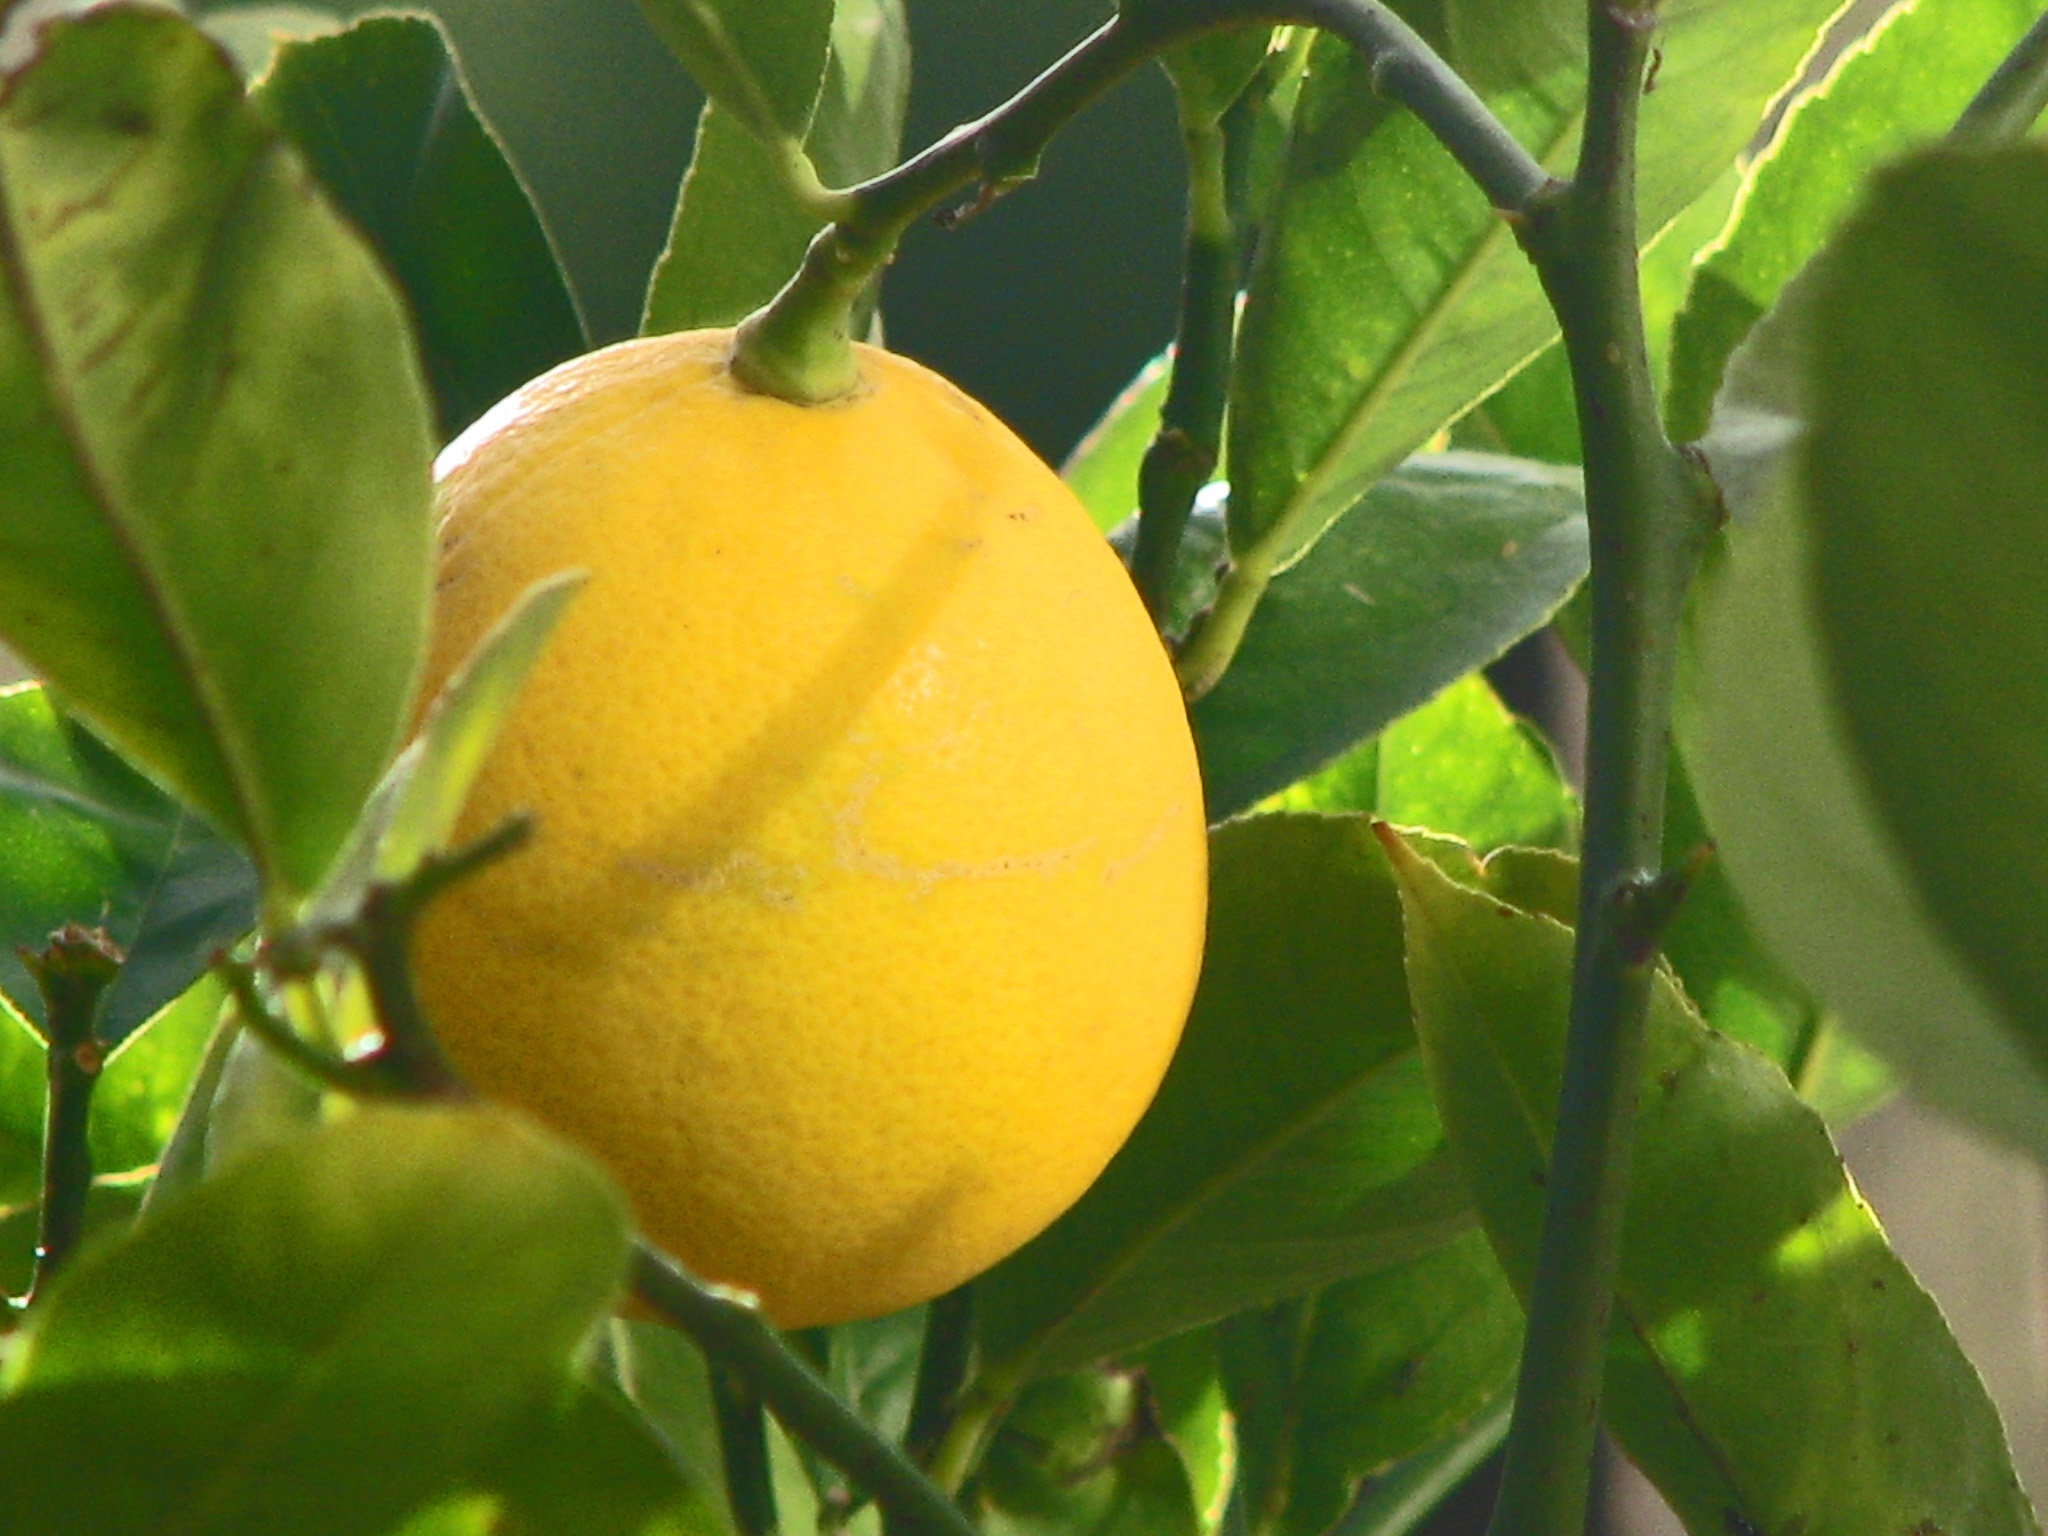 7 easy steps to grow your own indoor lemon tree from seed for Can i grow a lemon tree from lemon seeds